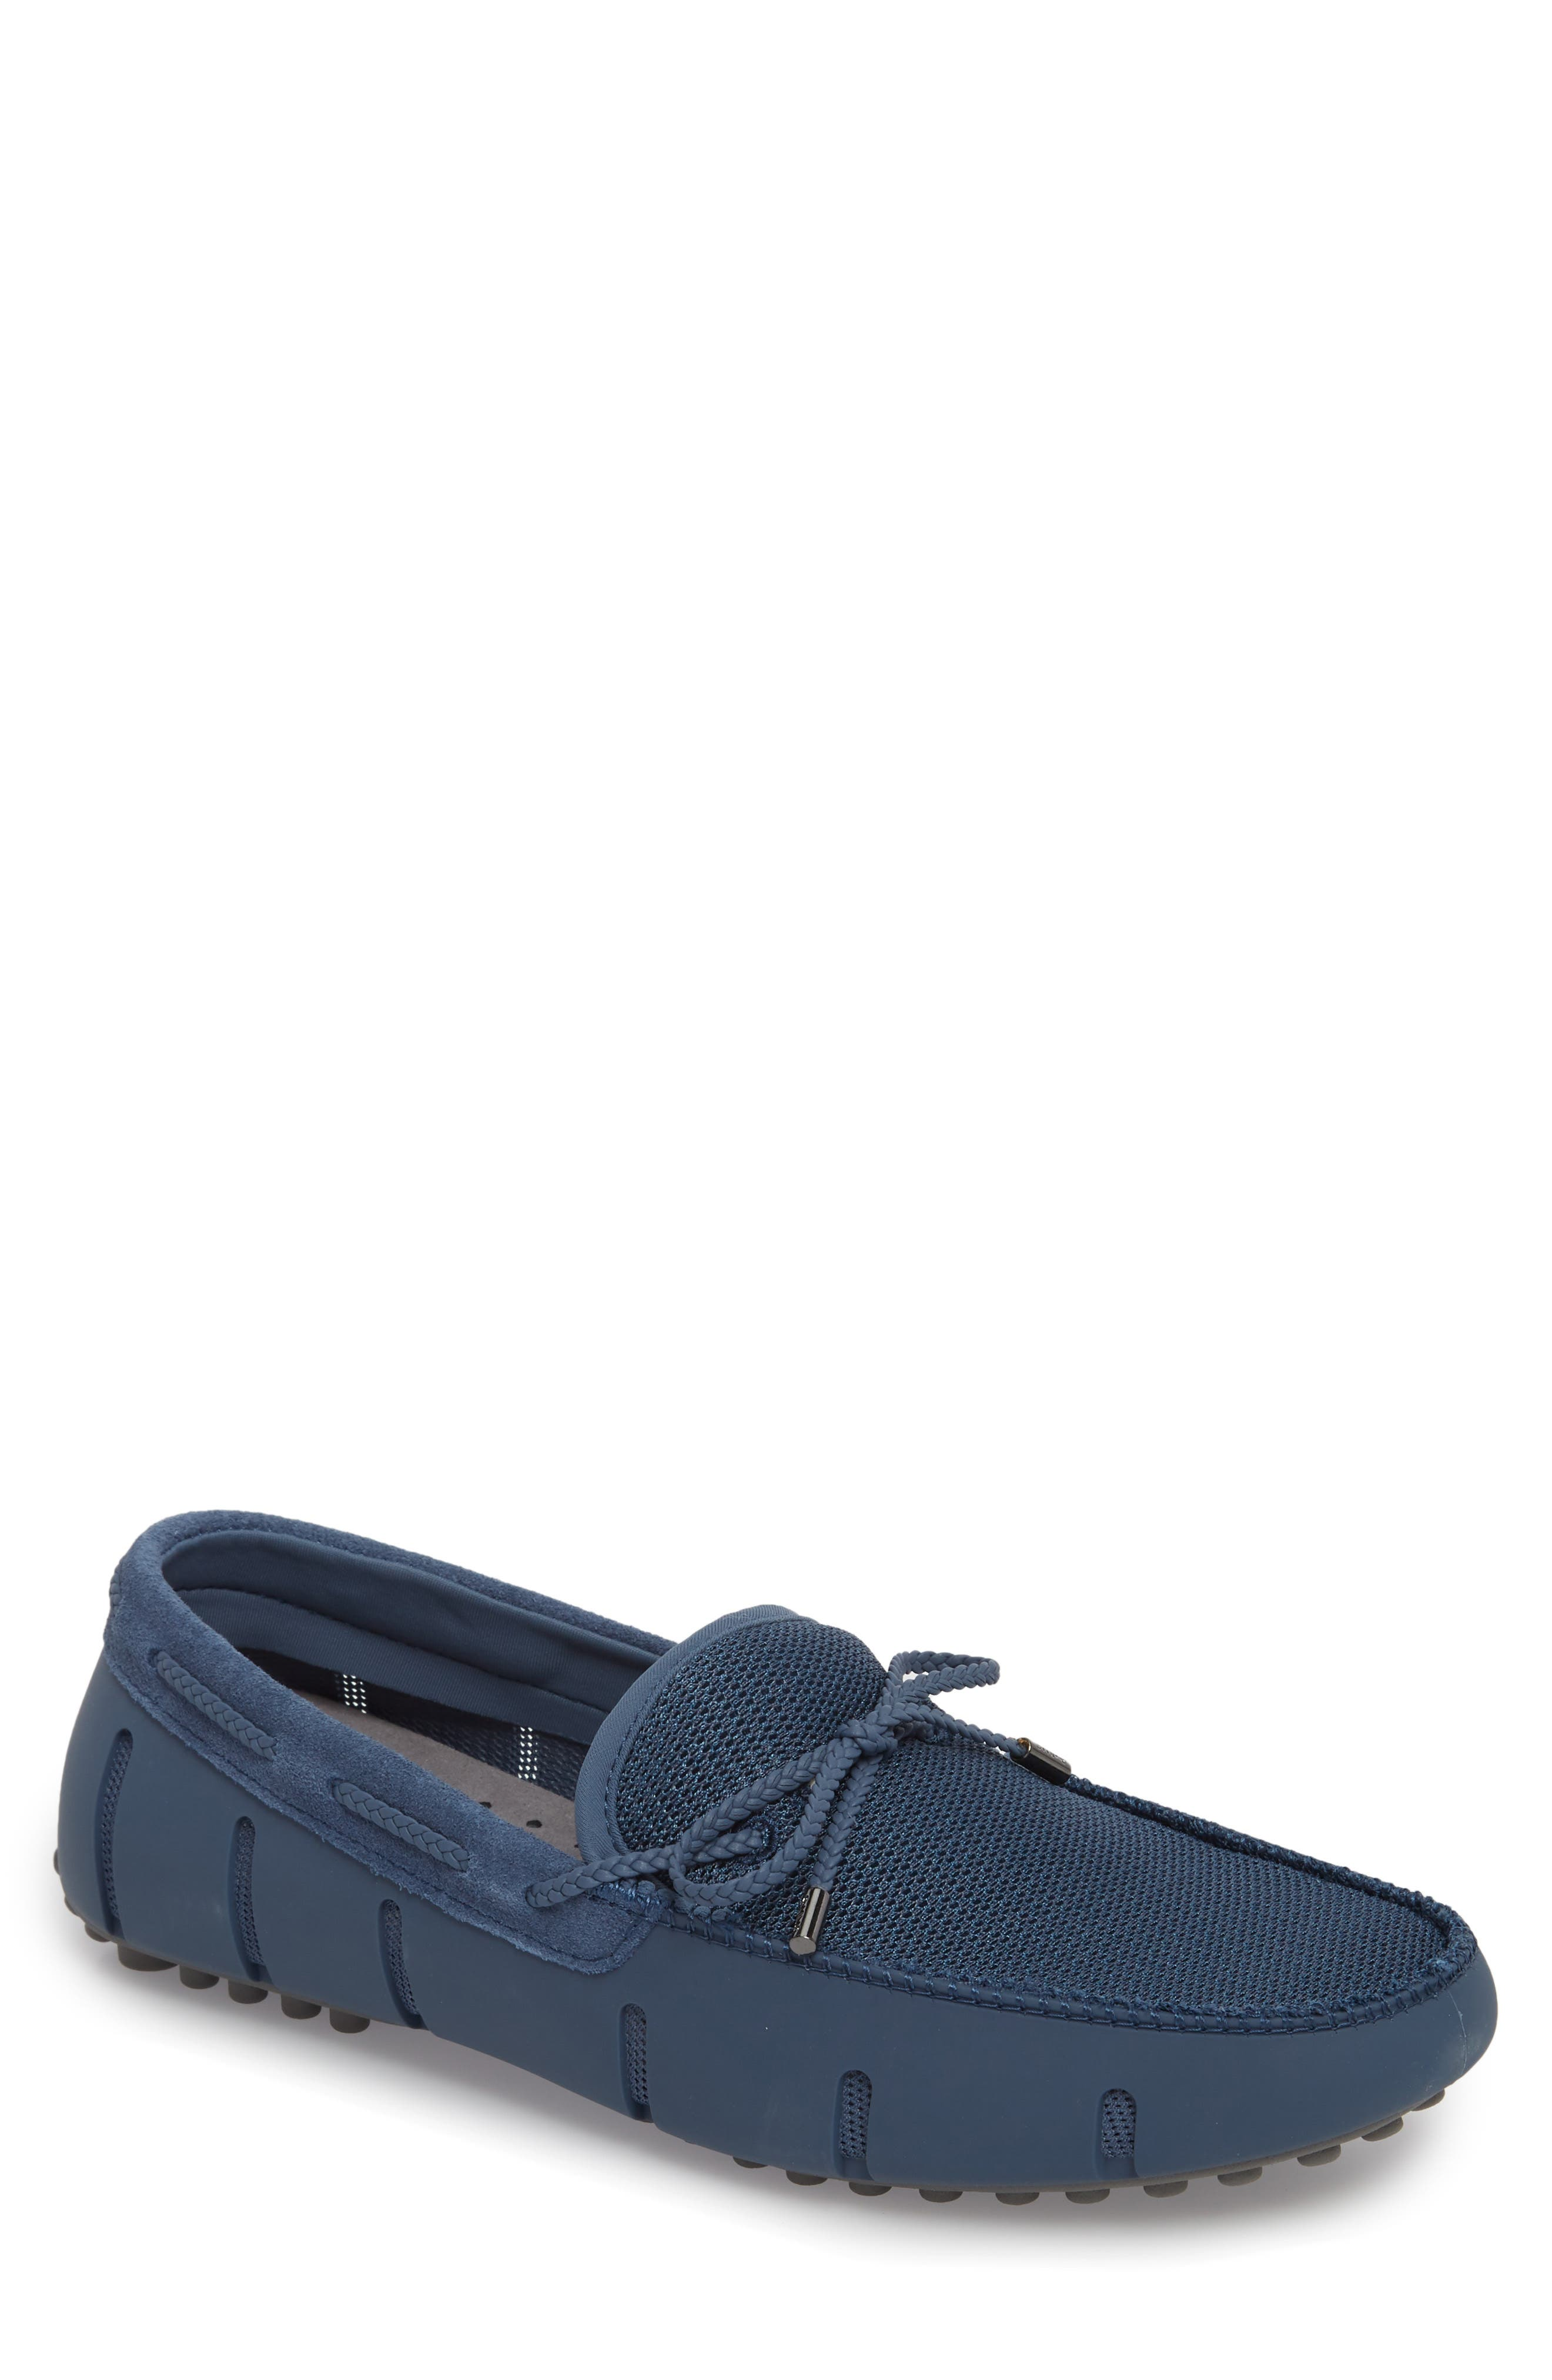 Main Image - Swims Washable Driving Loafer (Men)